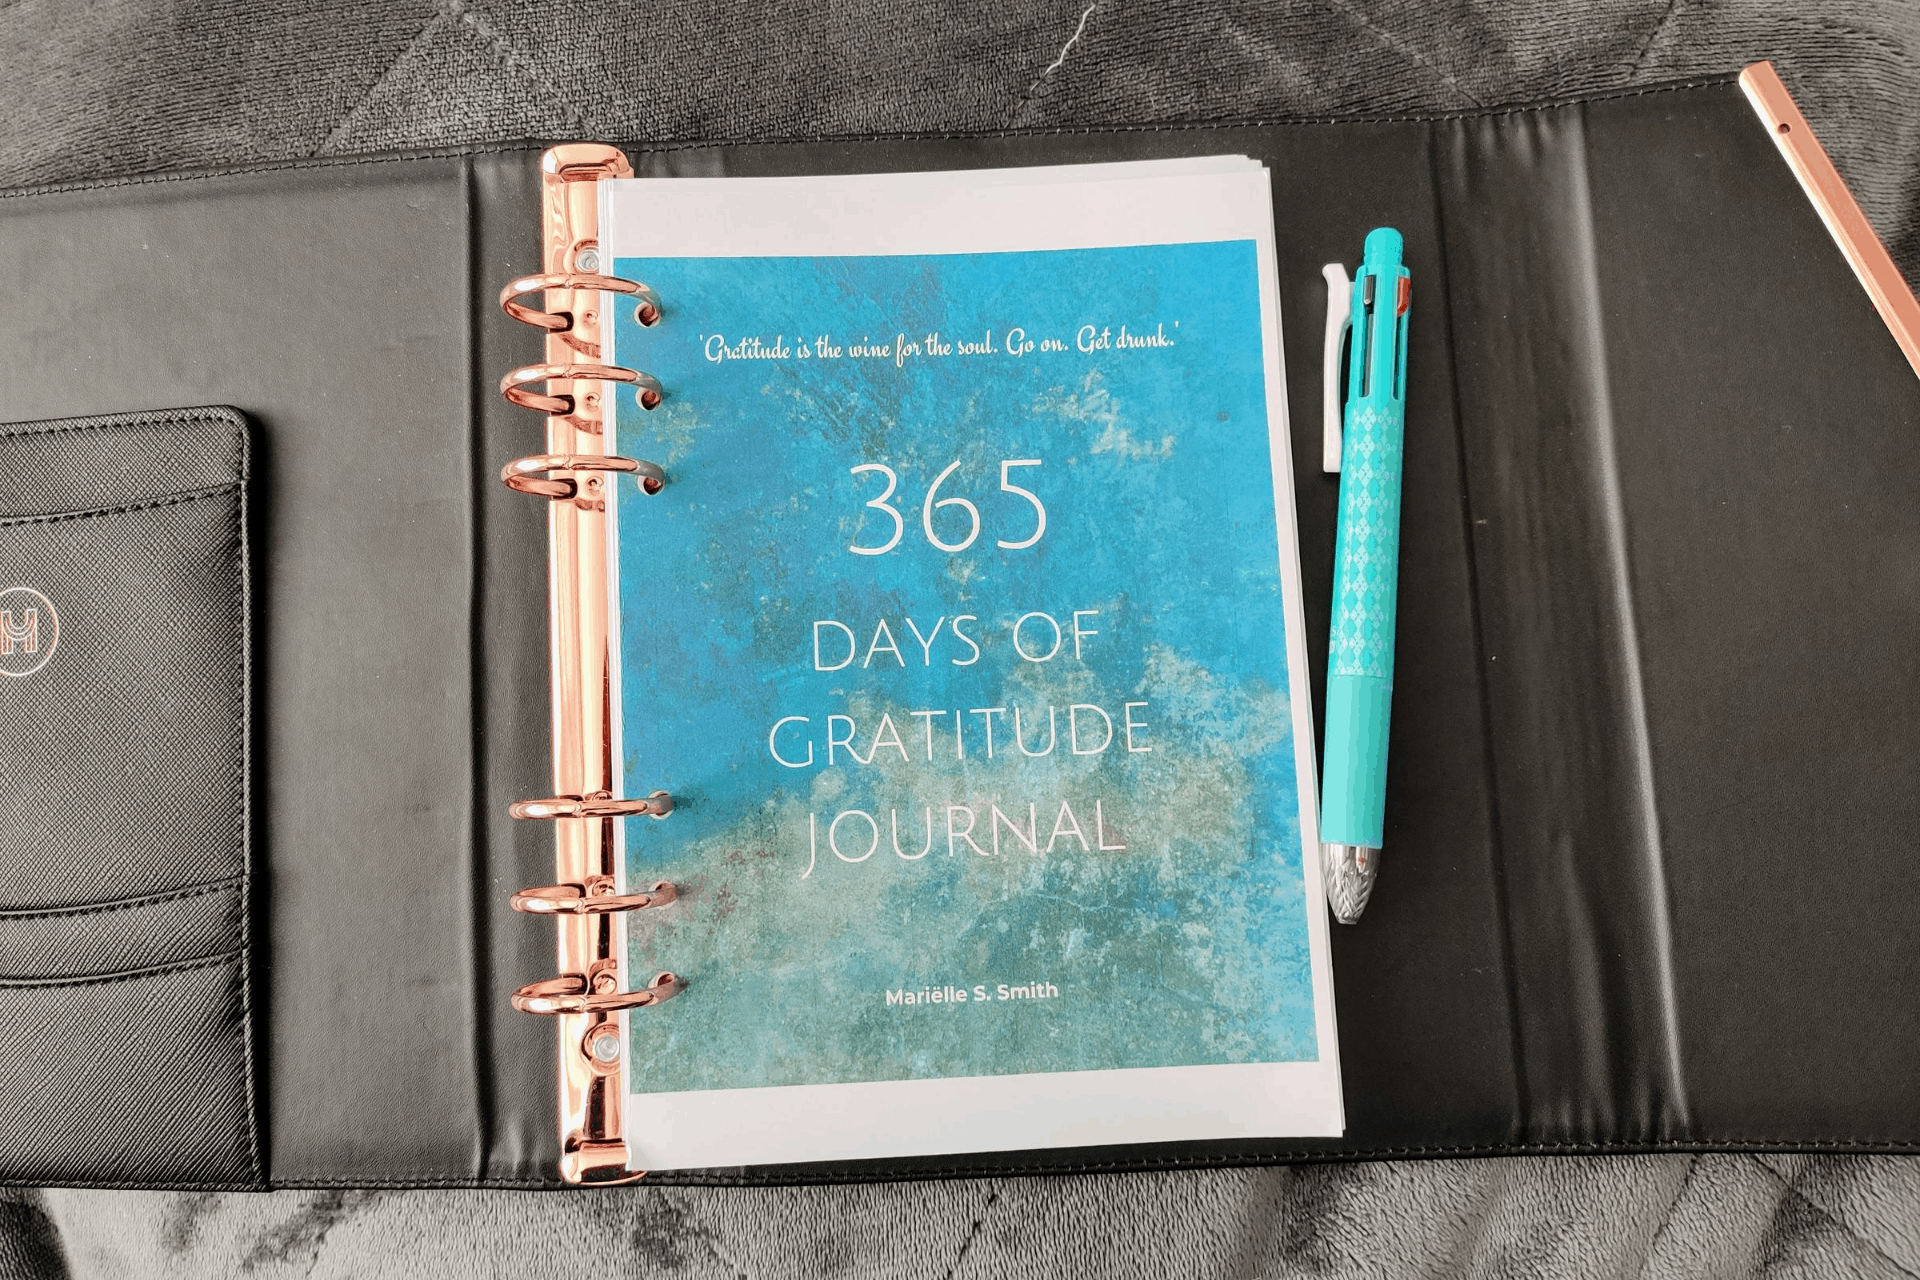 The cover of the 365 Days of Gratitude Journal by Marielle S Smith